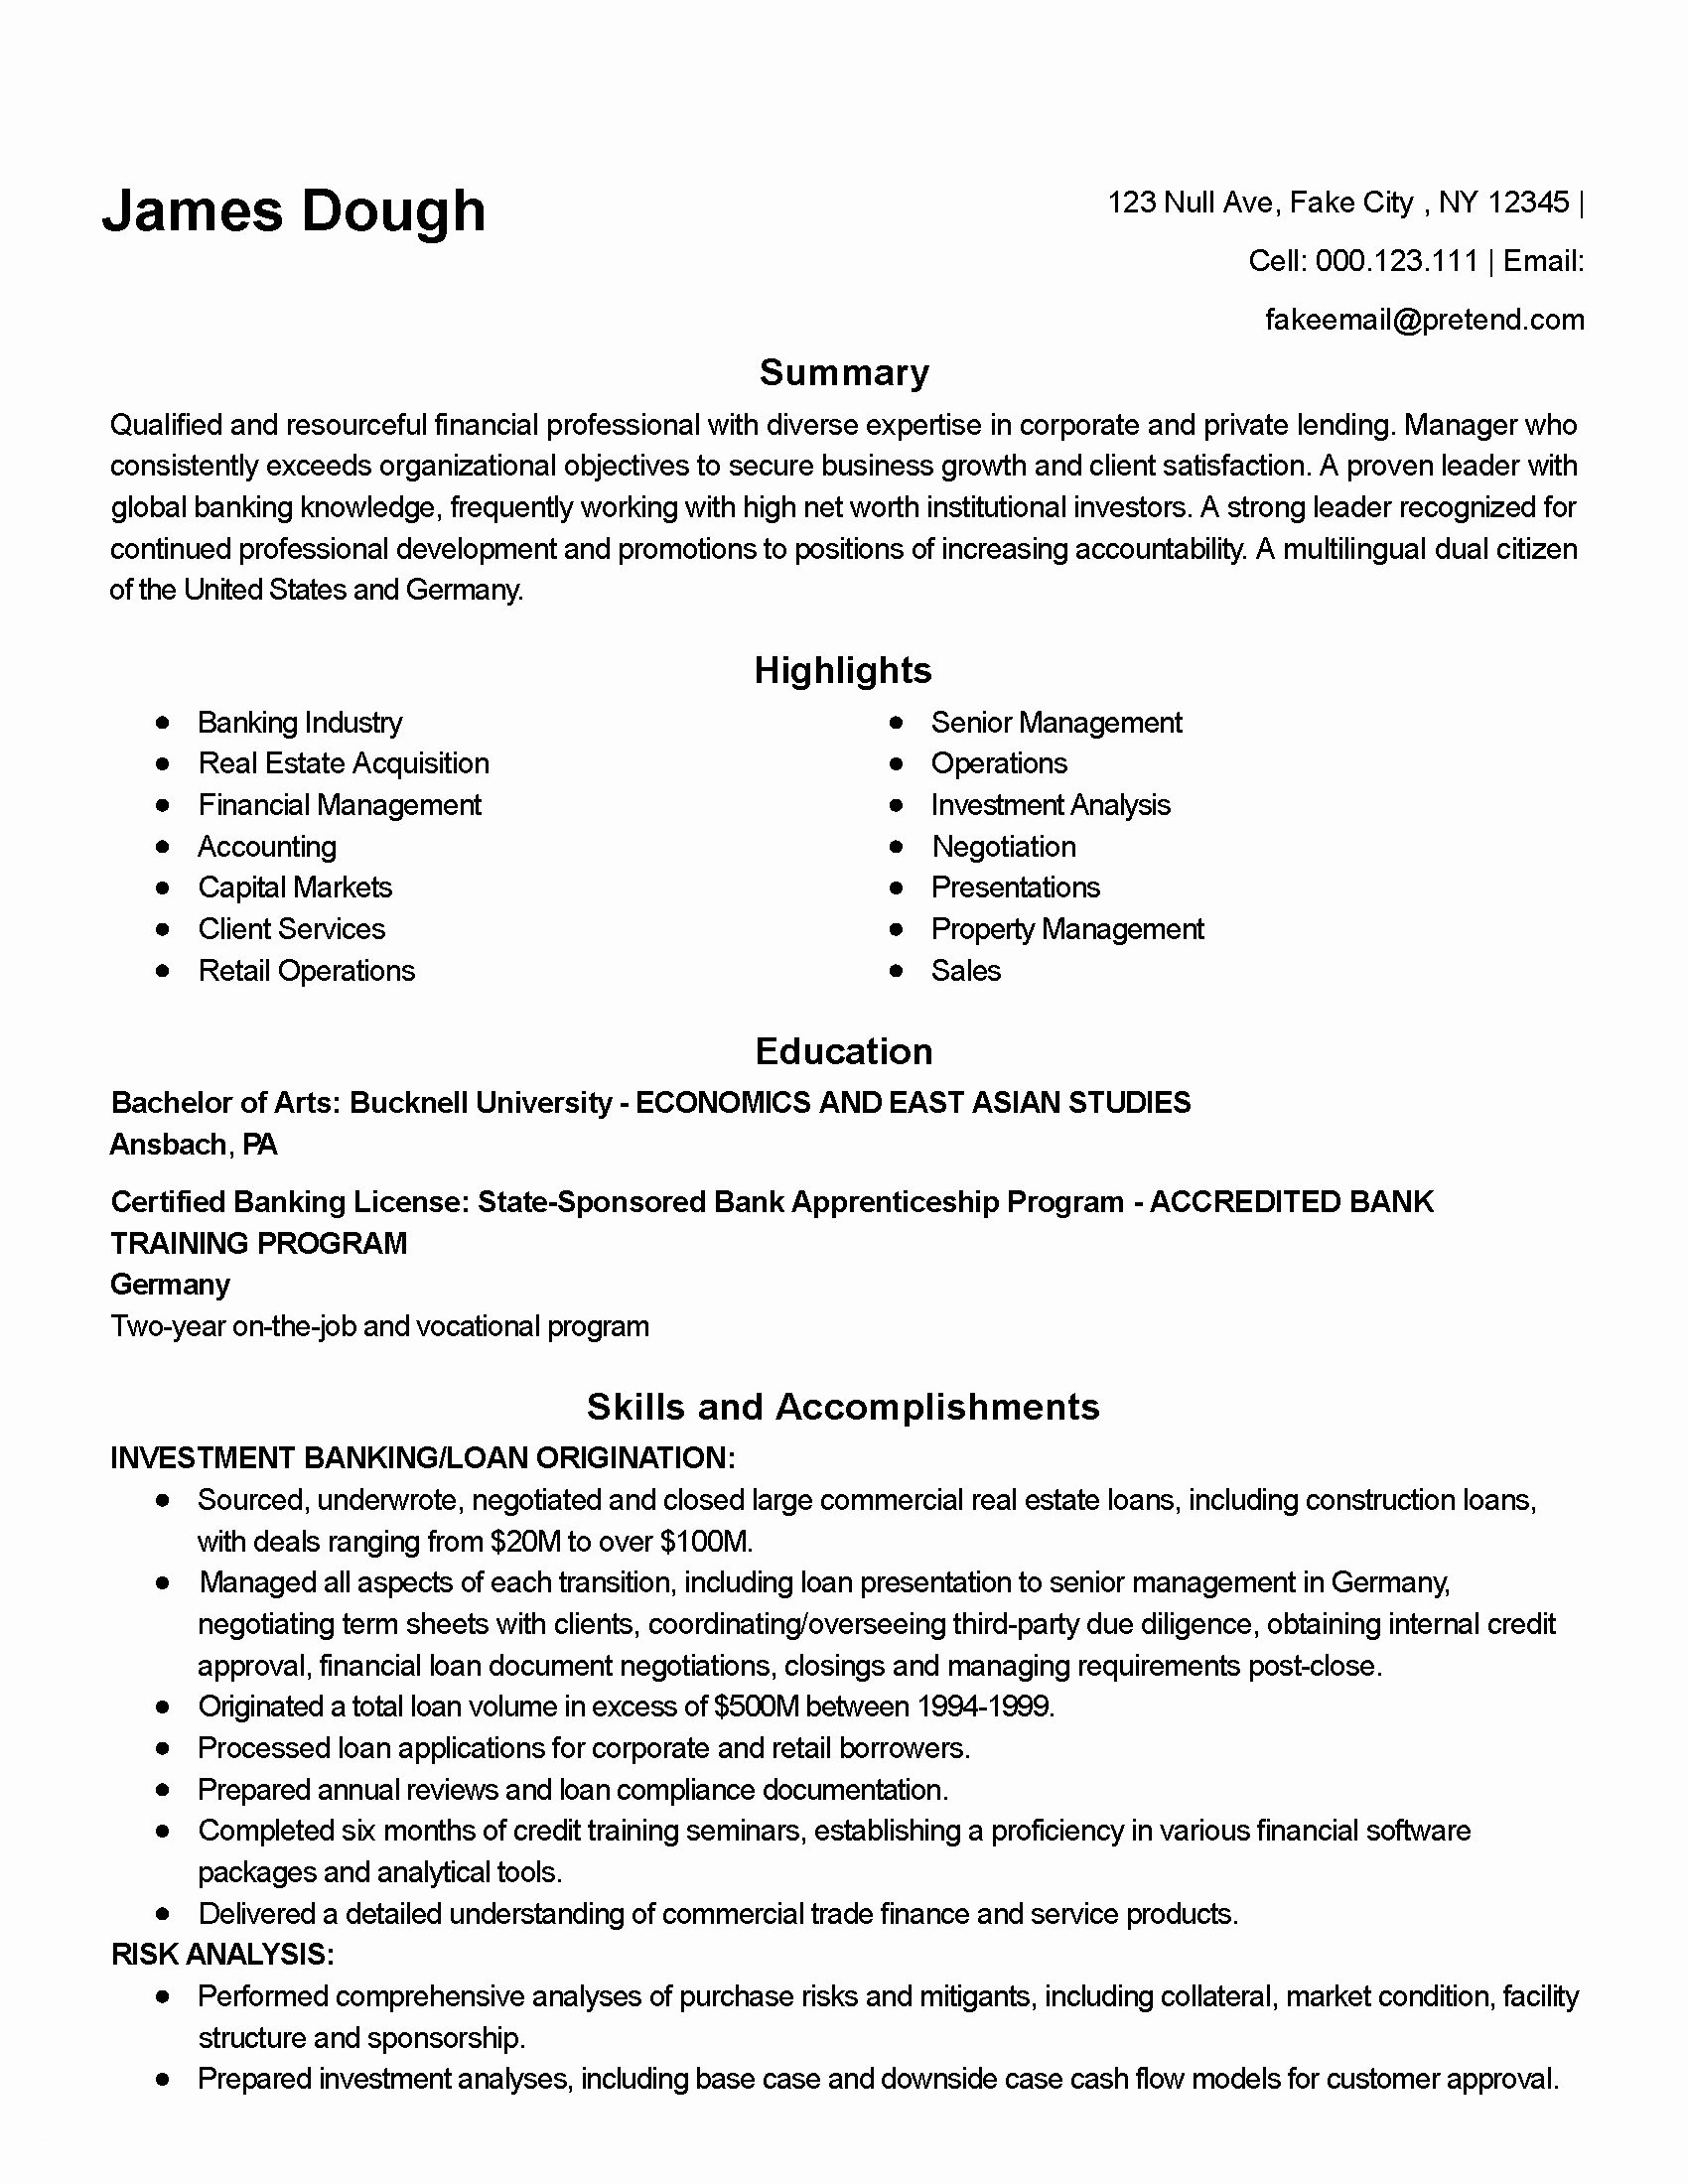 Graduate School Cover Letter Template - Letter Interest for Graduate School Example Refrence Elegant